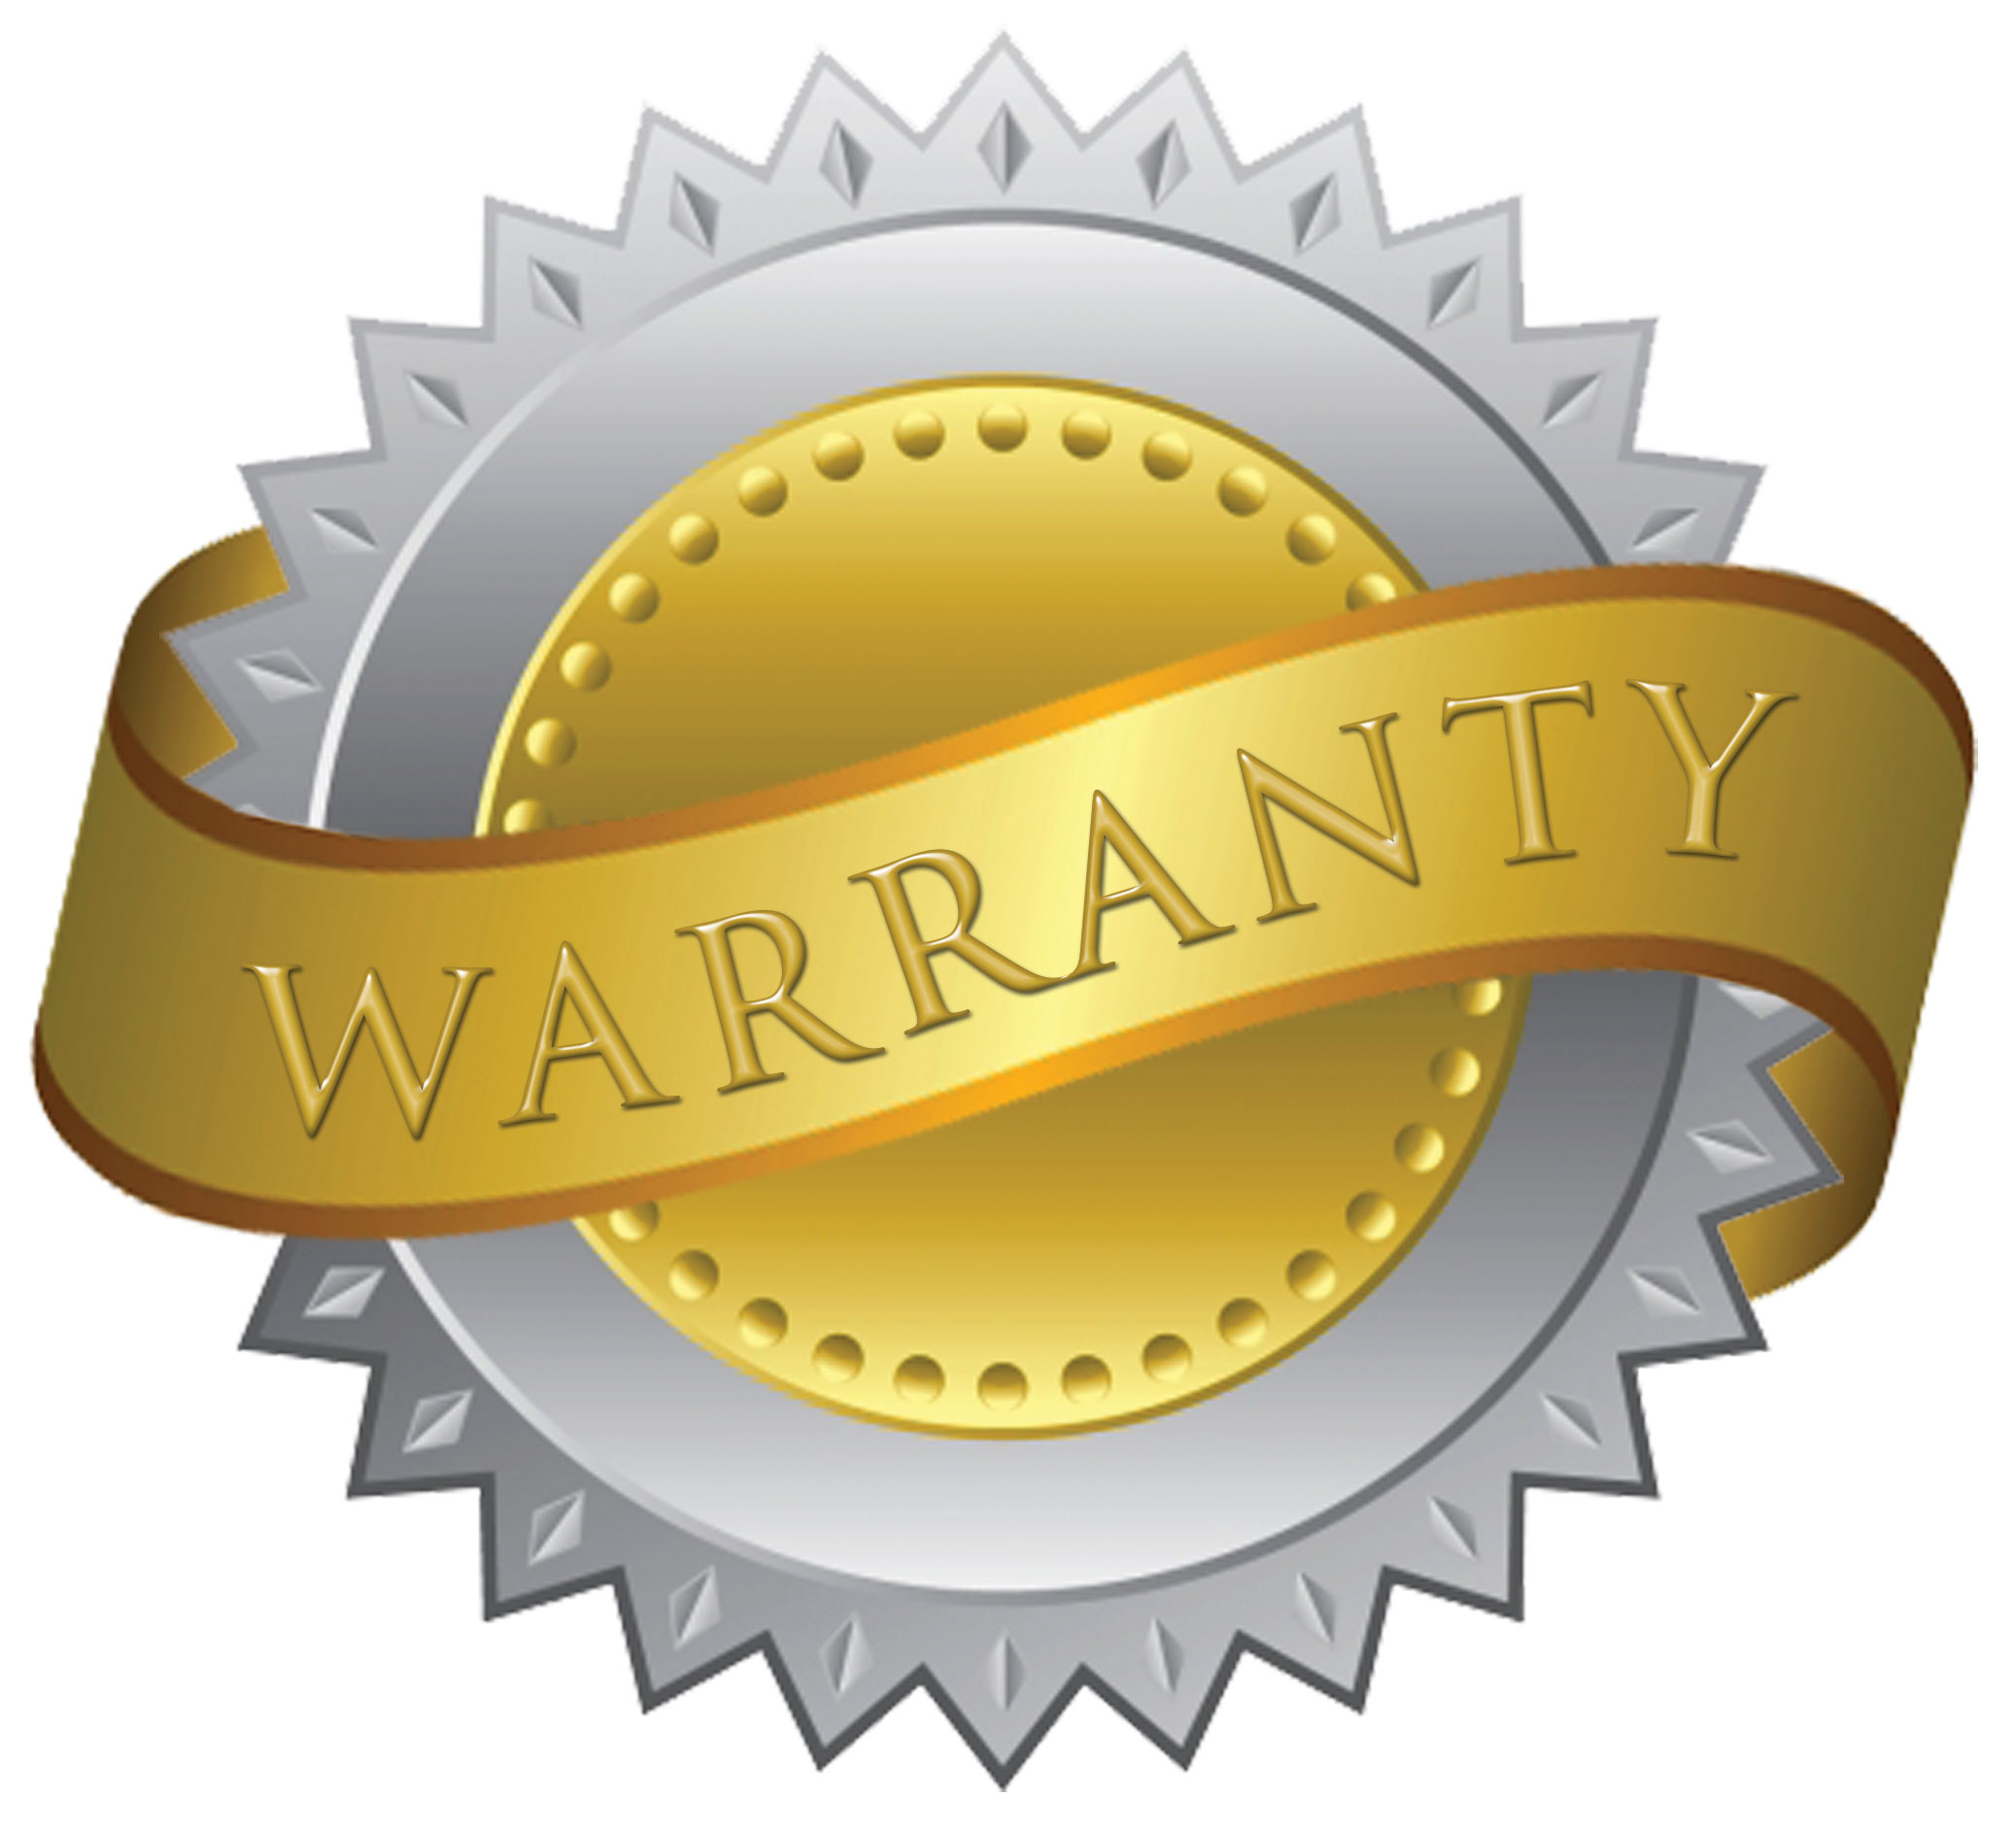 iphone ipad best warranty.jpg